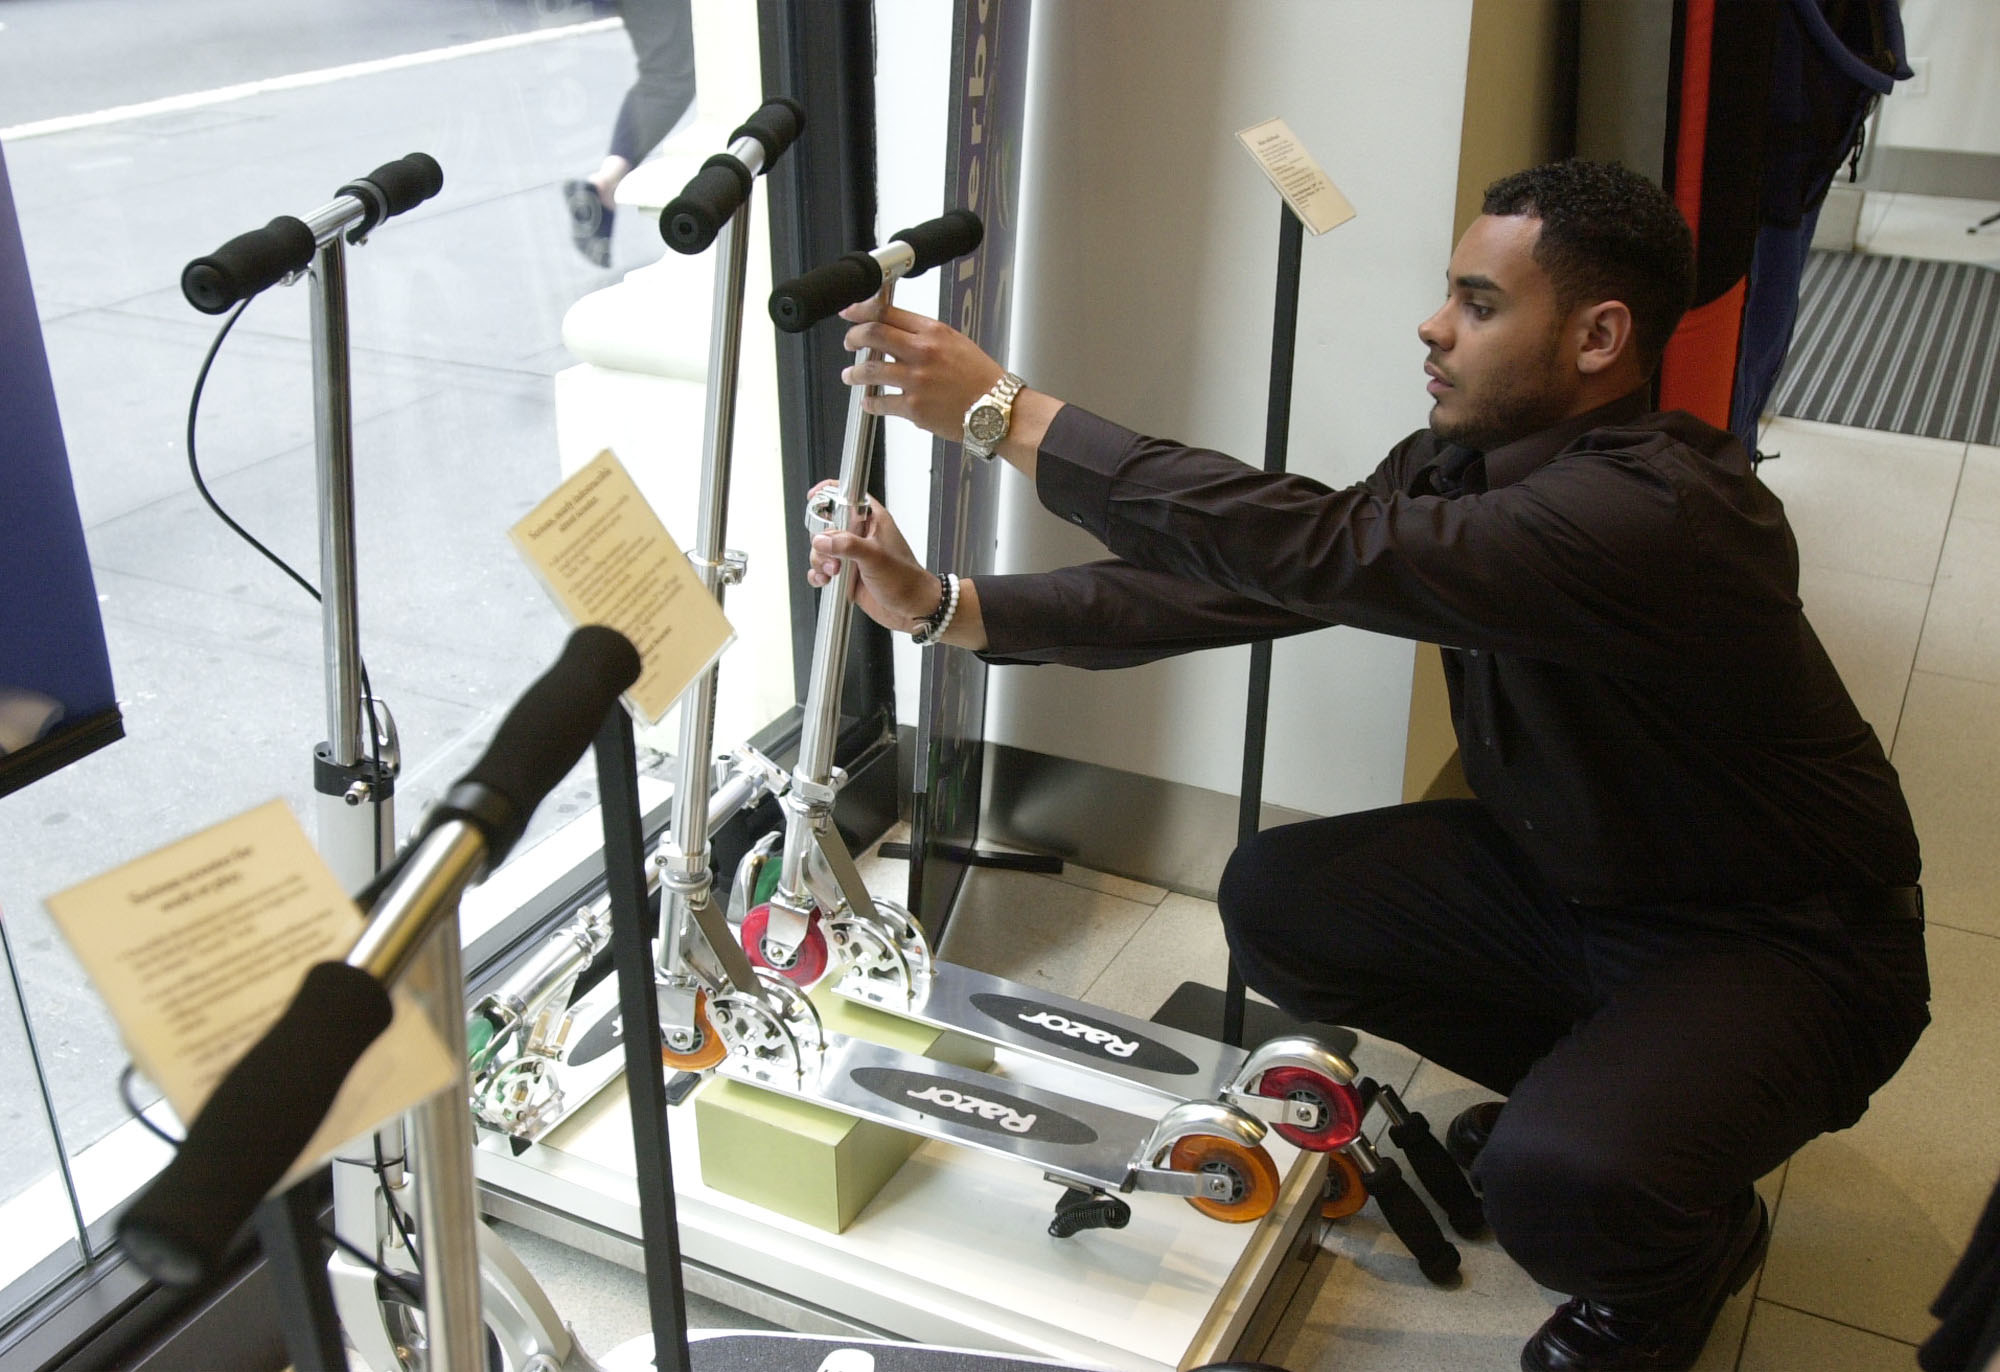 An employee setting up Razor scooters as a window display at a Sharper Image